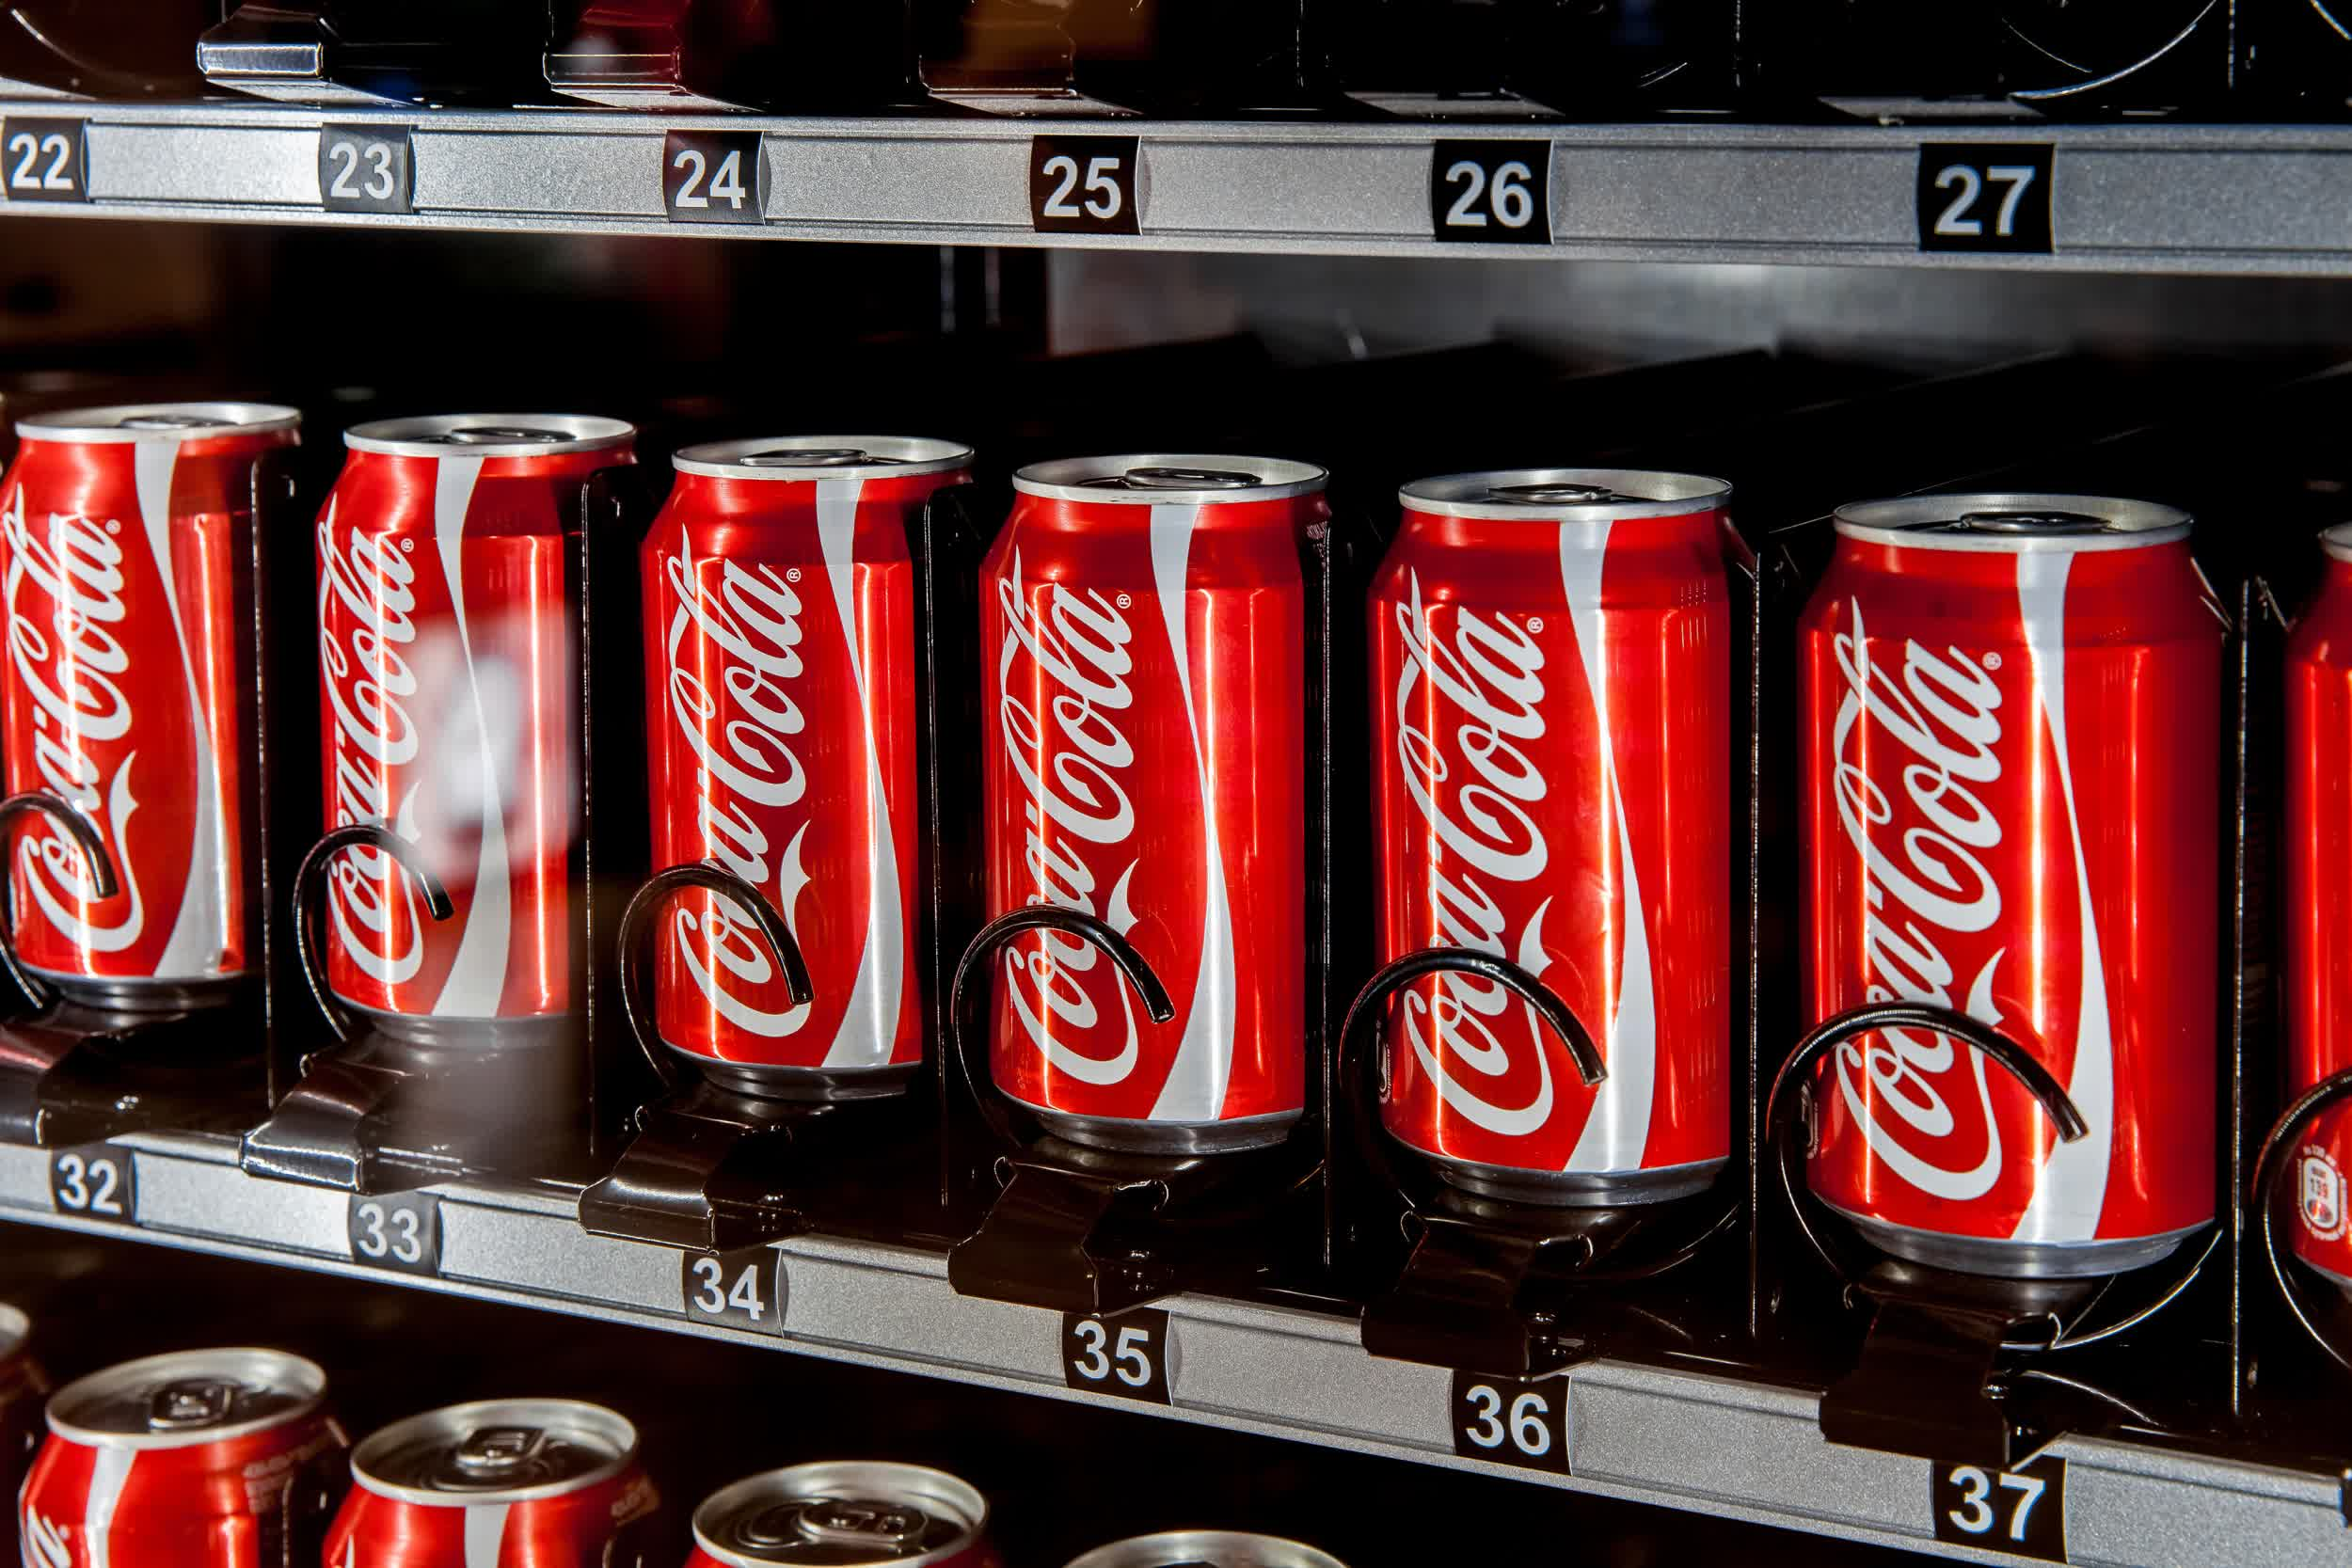 Coca-Cola is testing vending machine subscriptions in Japan